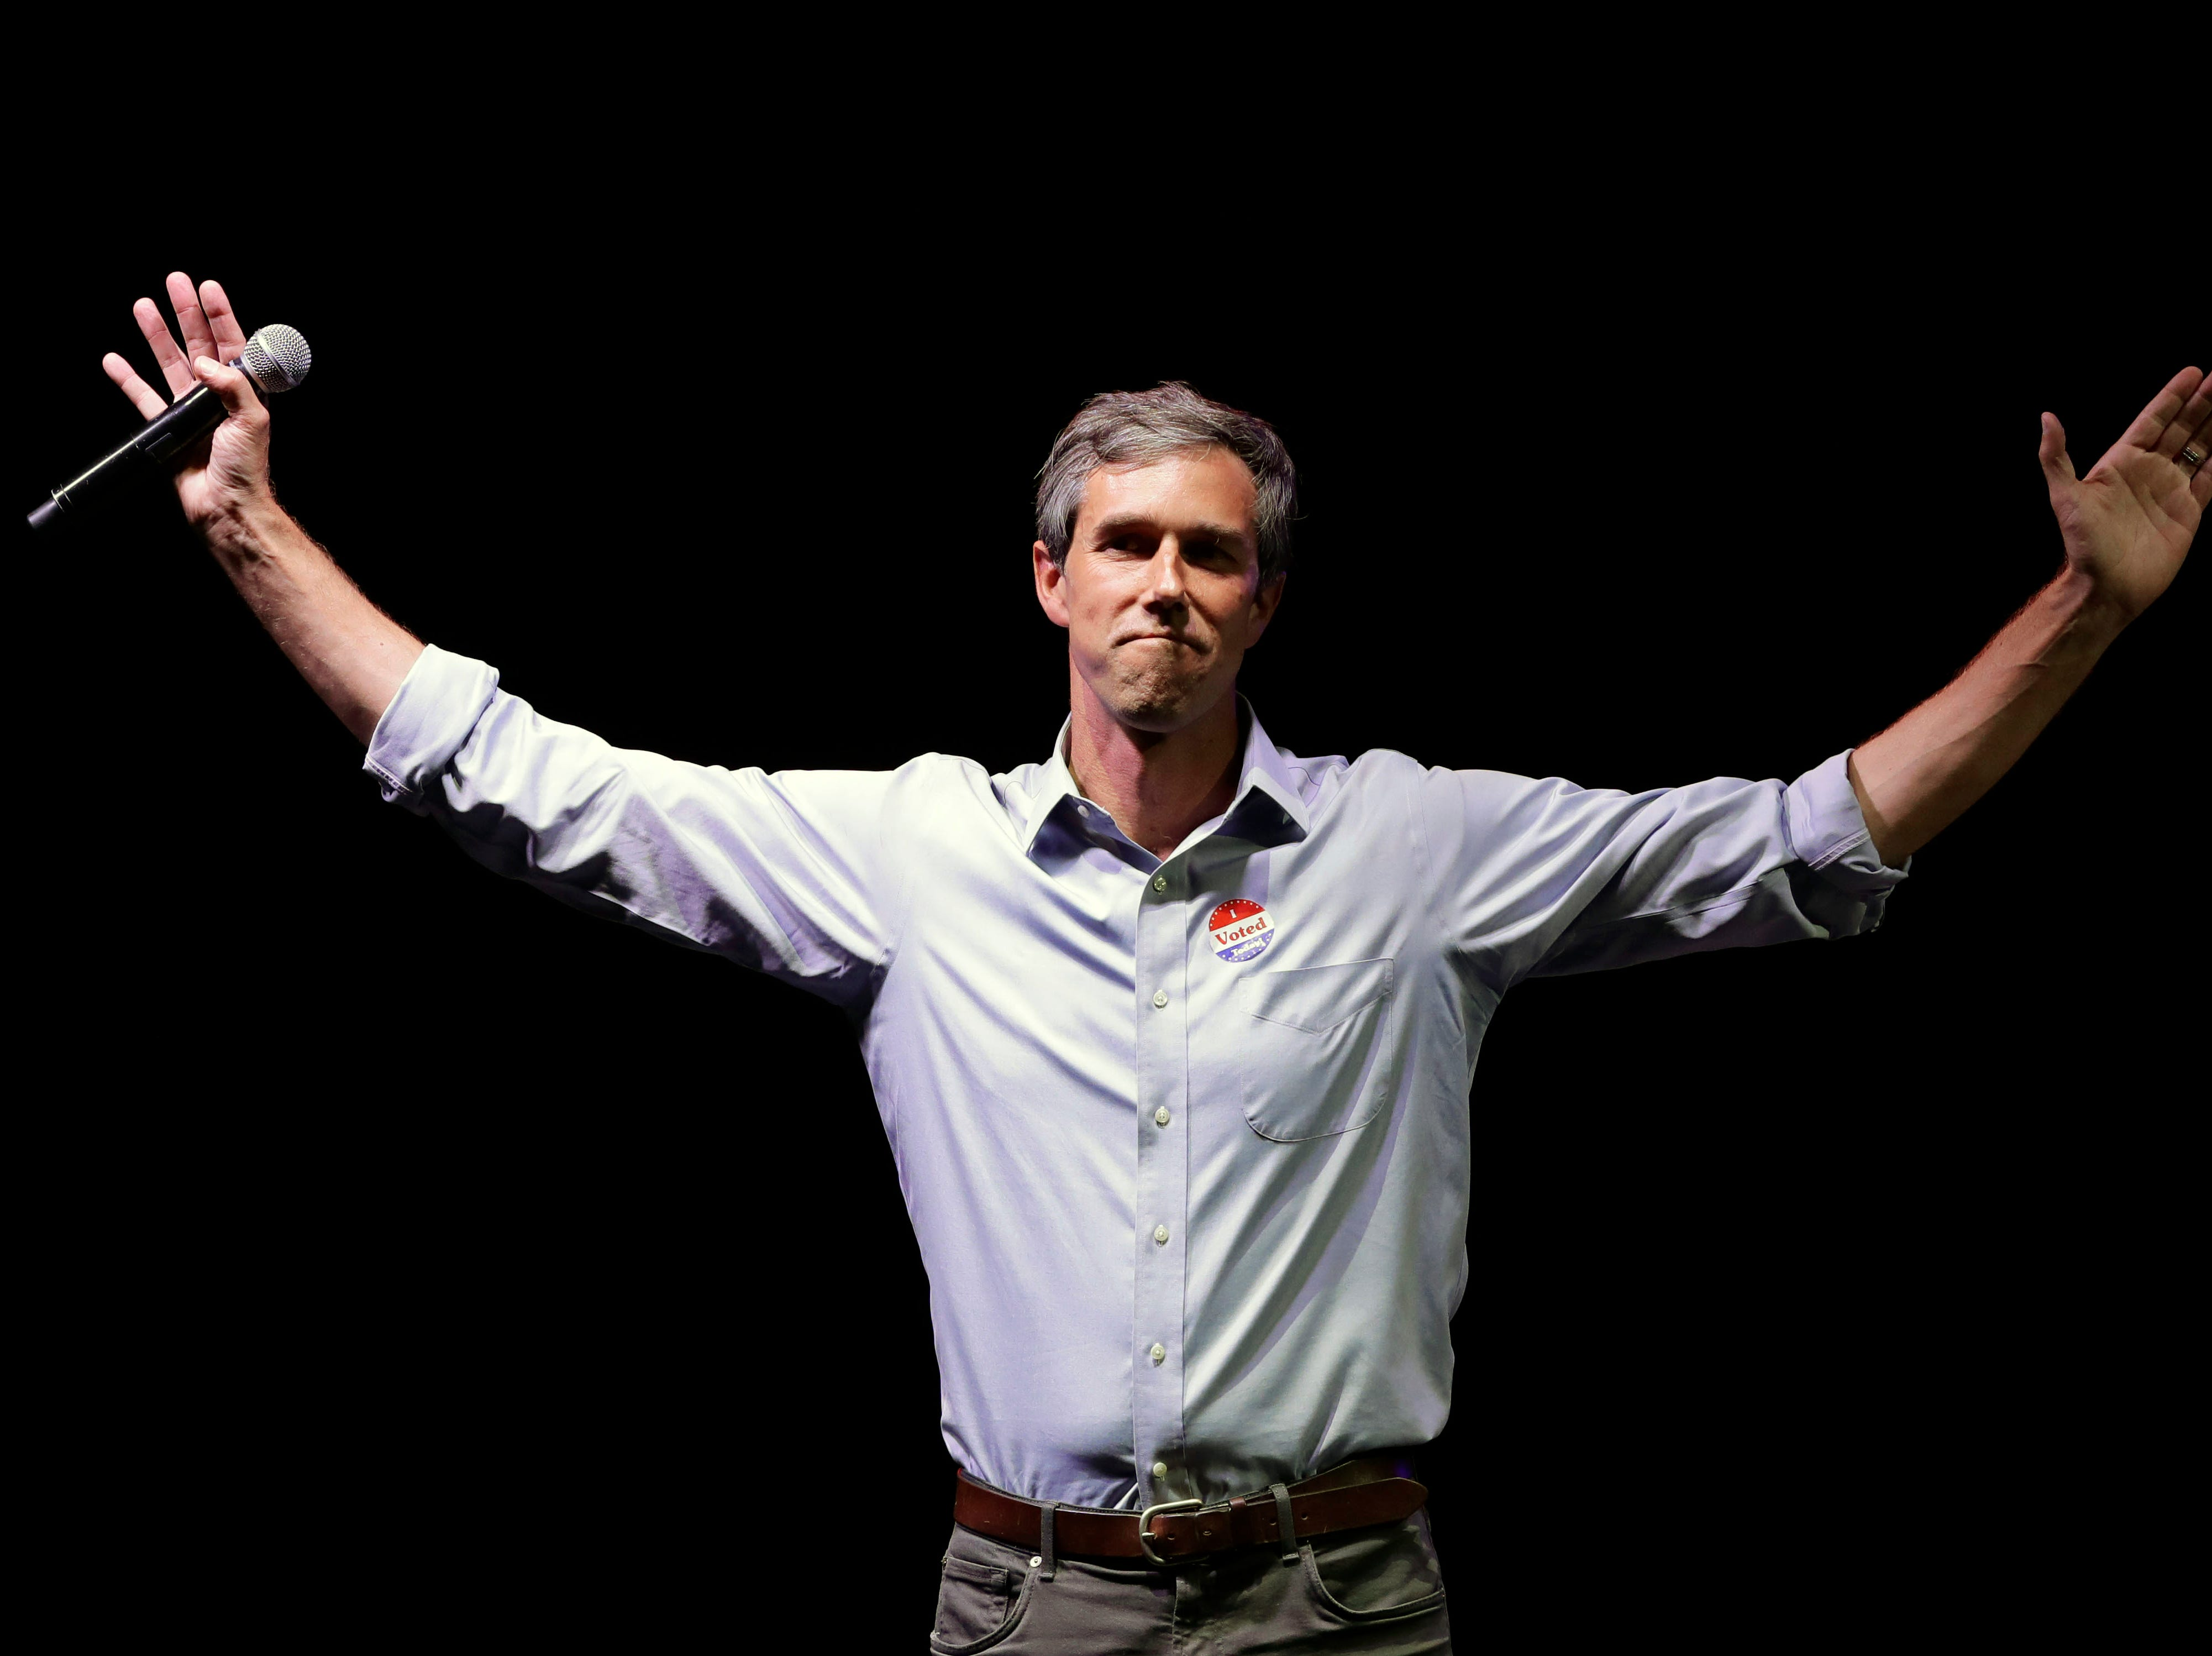 """In this Nov. 6, 2018, file photo, Rep. Beto O'Rourke, D-Texas, the 2018 Democratic candidate for U.S. Senate in Texas, makes his concession speech at his election night party in El Paso, Texas.  When it comes to a 2020 presidential run, Beto O'Rourke is still playing hard to get. The Democratic congressman murmured """"No decision. No decision on that,"""" when pressed about launching a White House bid during a town hall Friday, Dec. 14 in his native El Paso."""